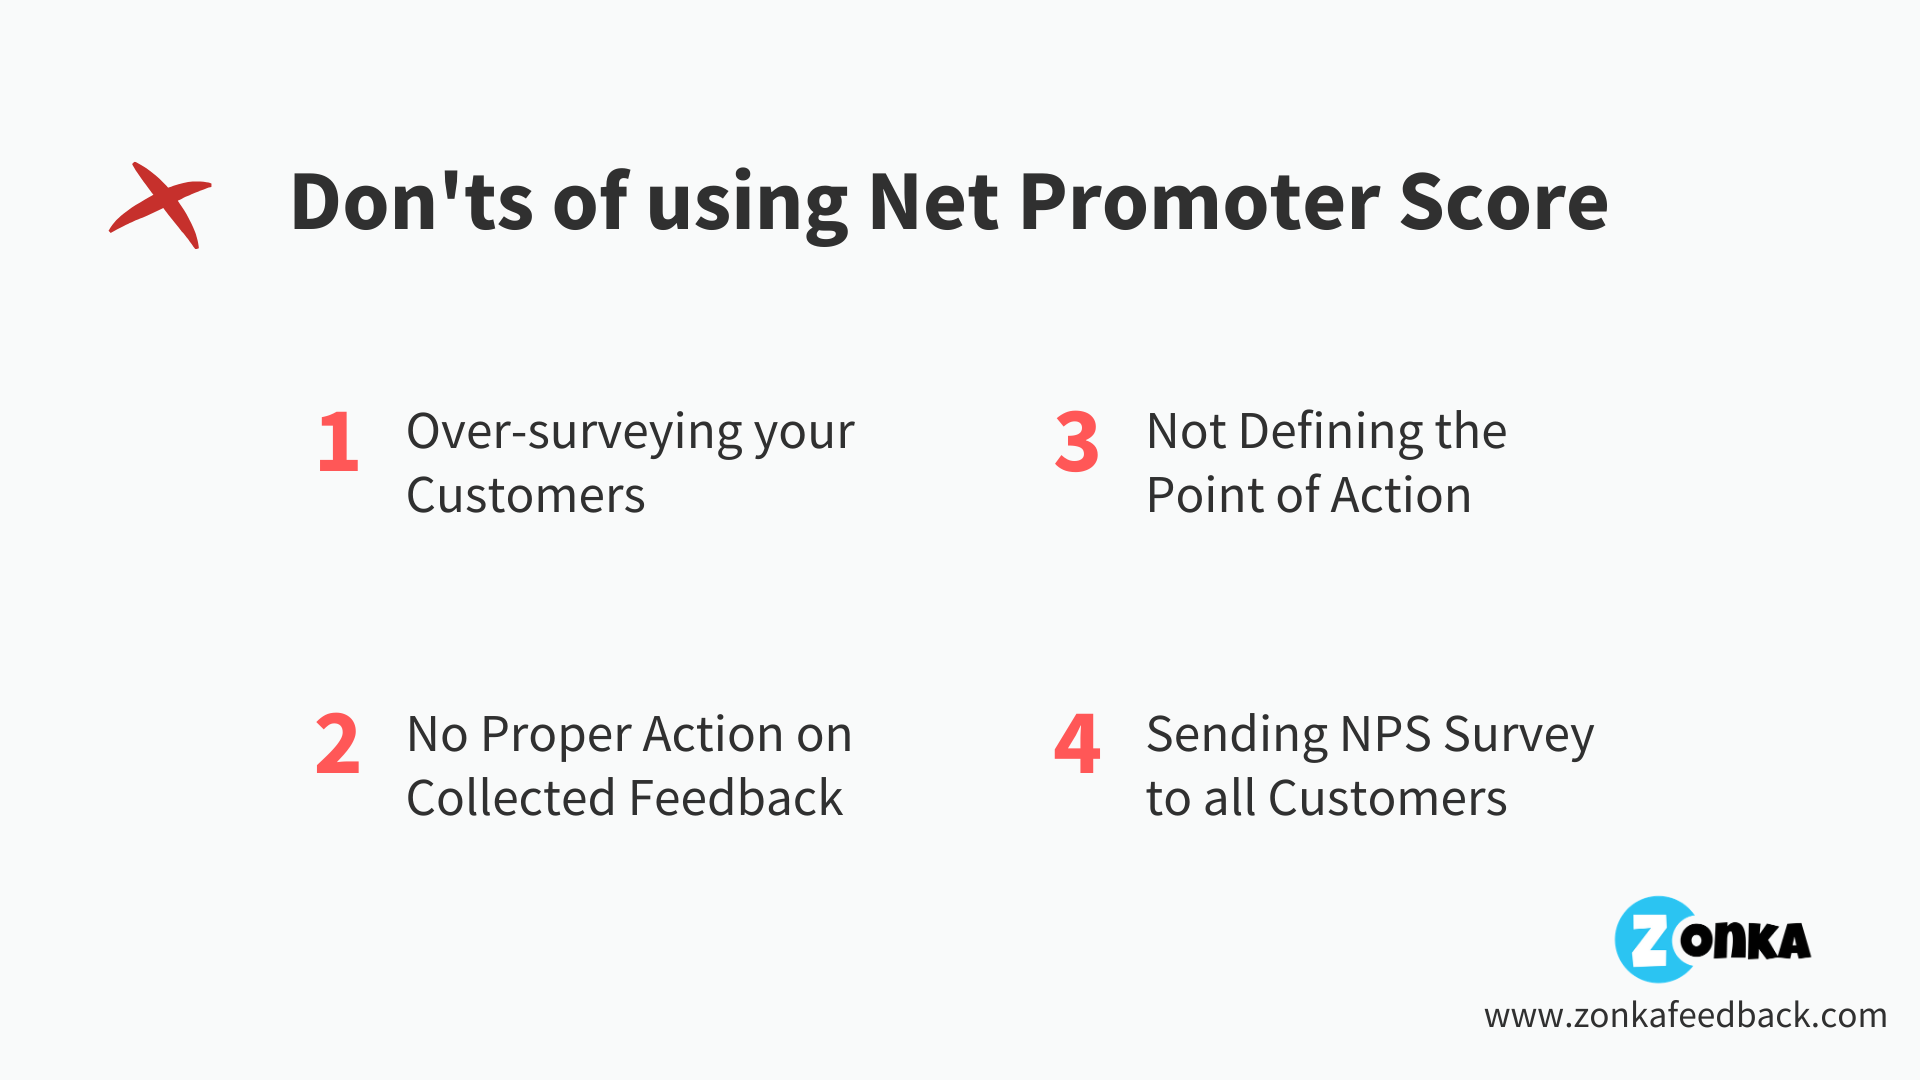 donts-of-using-net-promoter-score